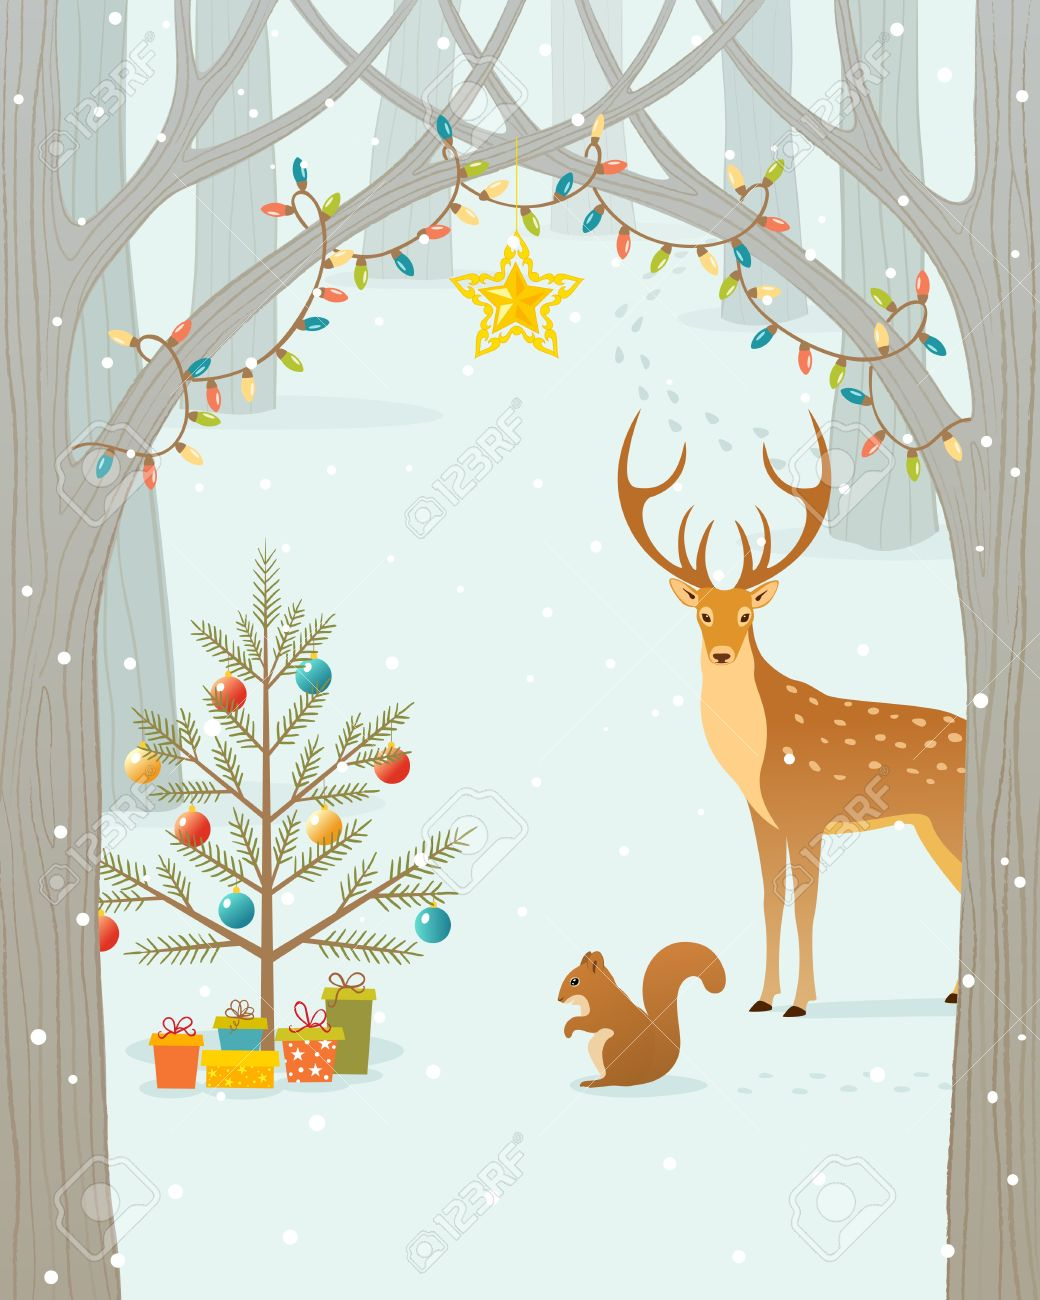 Christmas gifts for forest animals. Stock Vector - 16082967